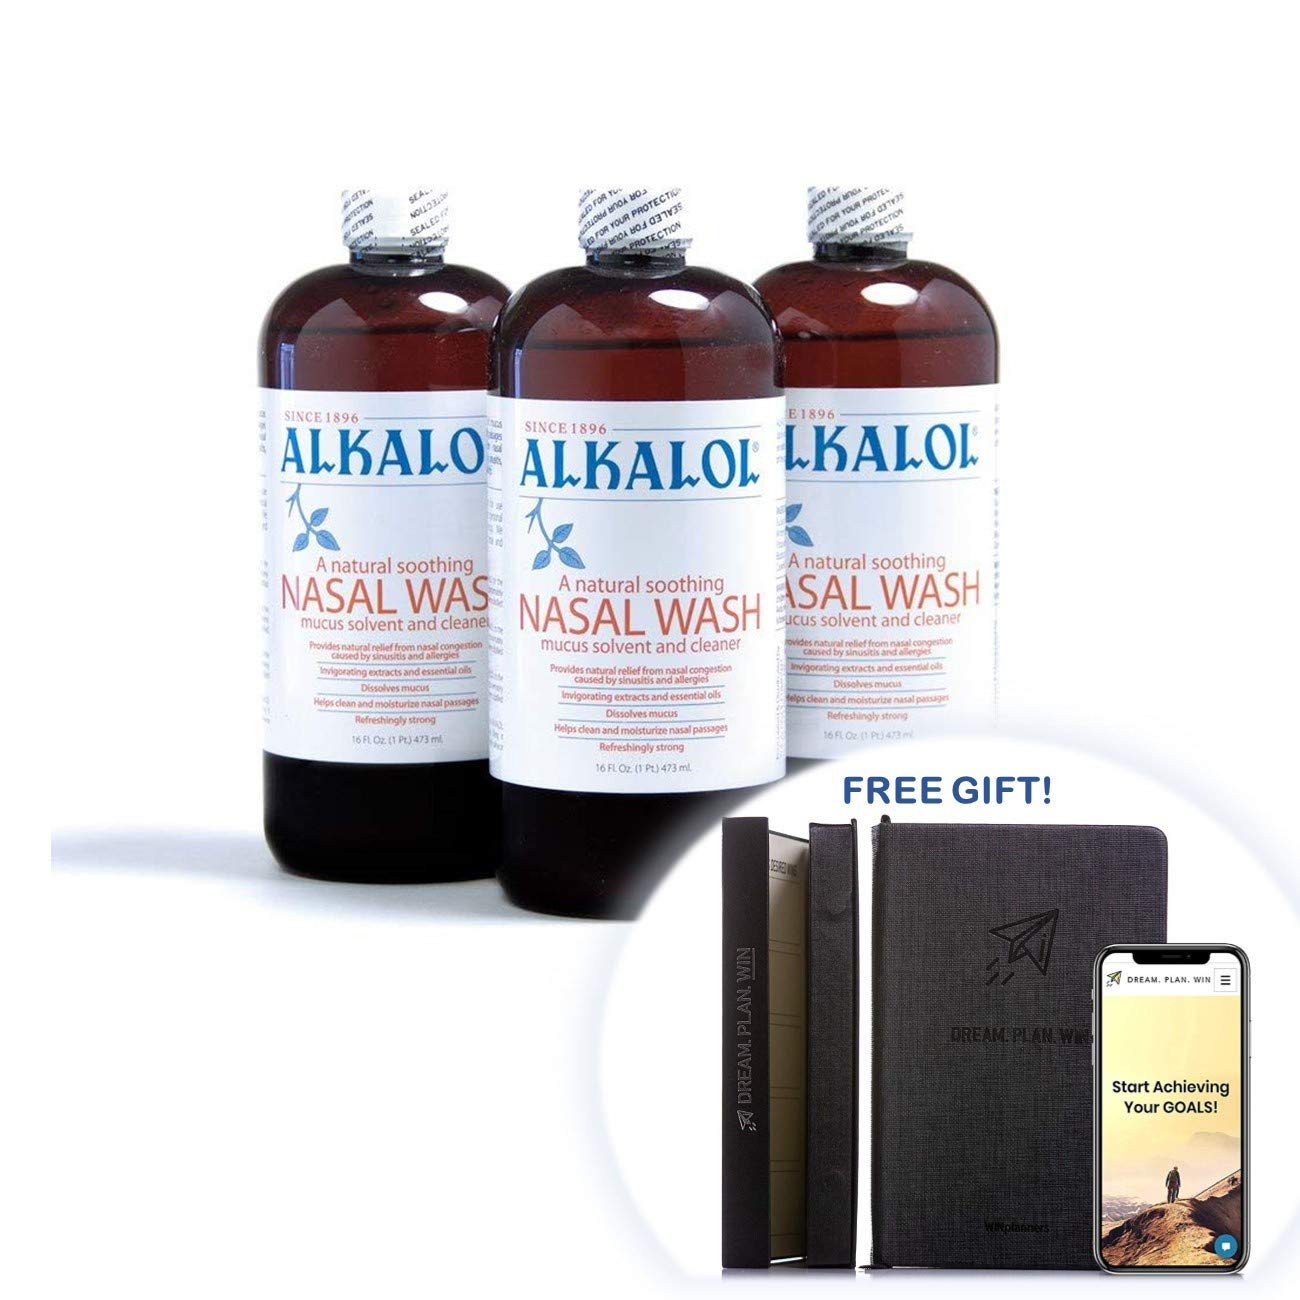 Alkalol Solution Original Nasal Wash, 8 Count -16 fl oz + Free Gift - Productivity Planner - Attain Your Dreams!